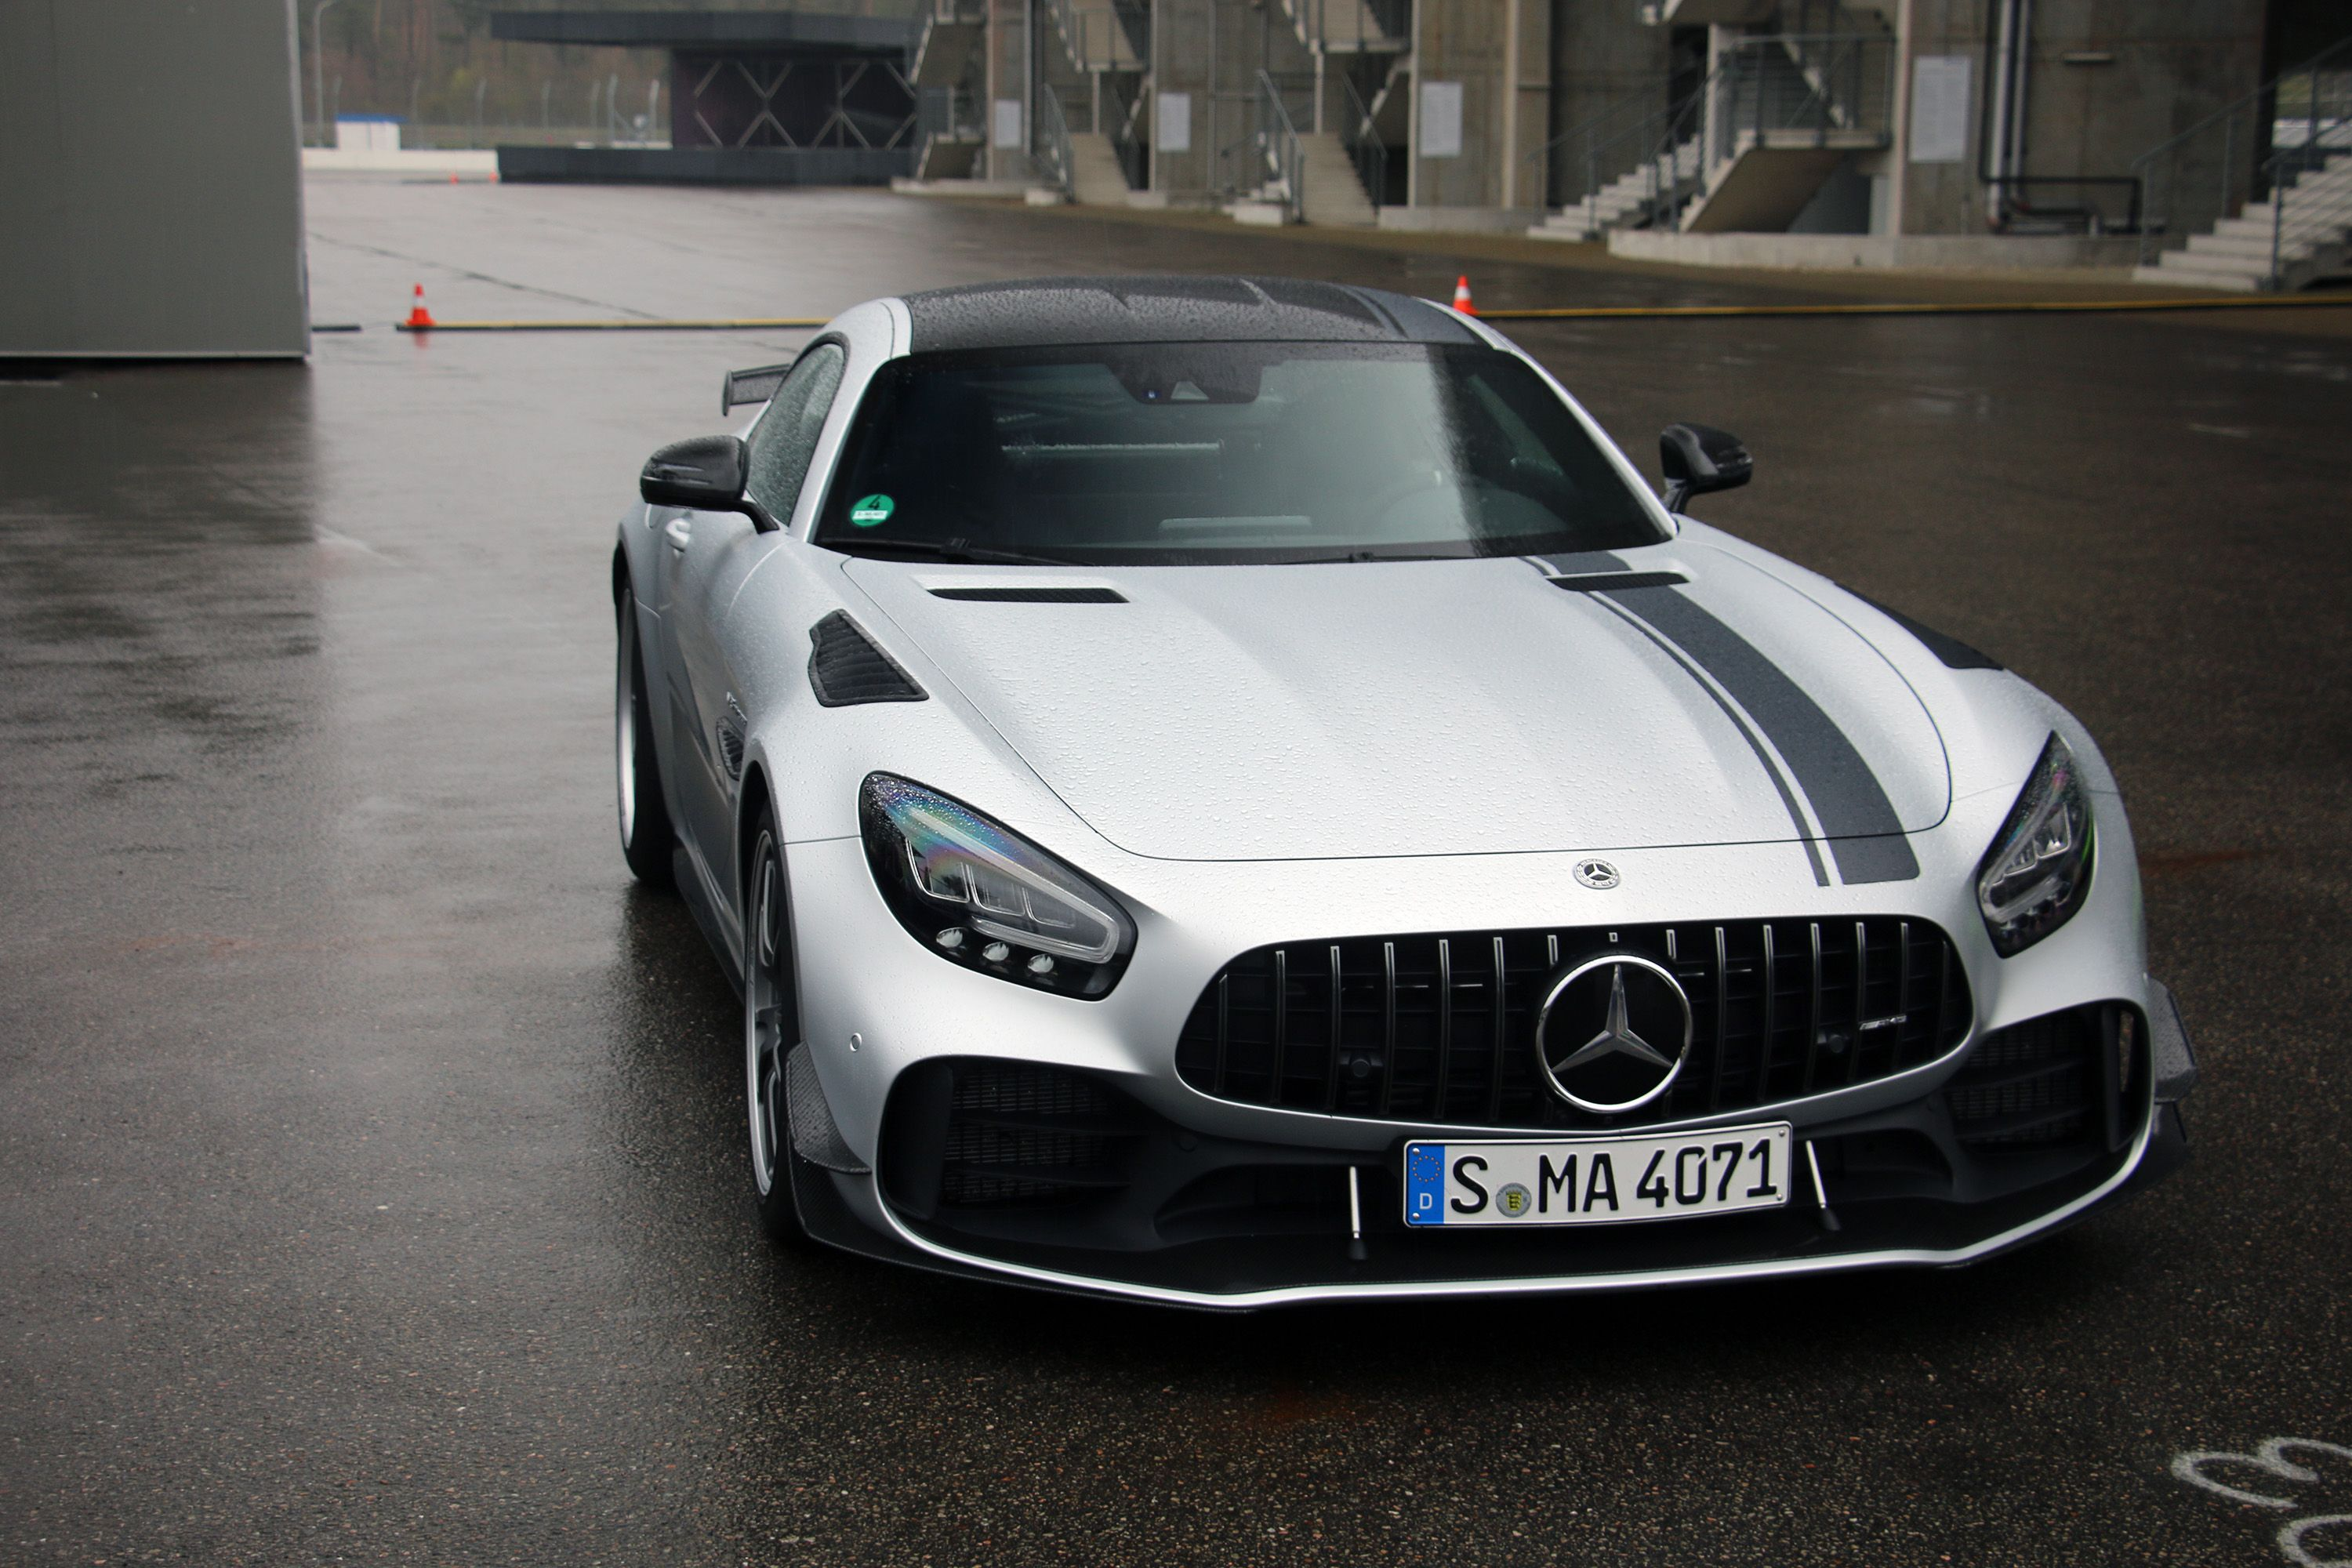 The Mercedes Amg Gt R Pro Is A Hardcore Trackday Beast